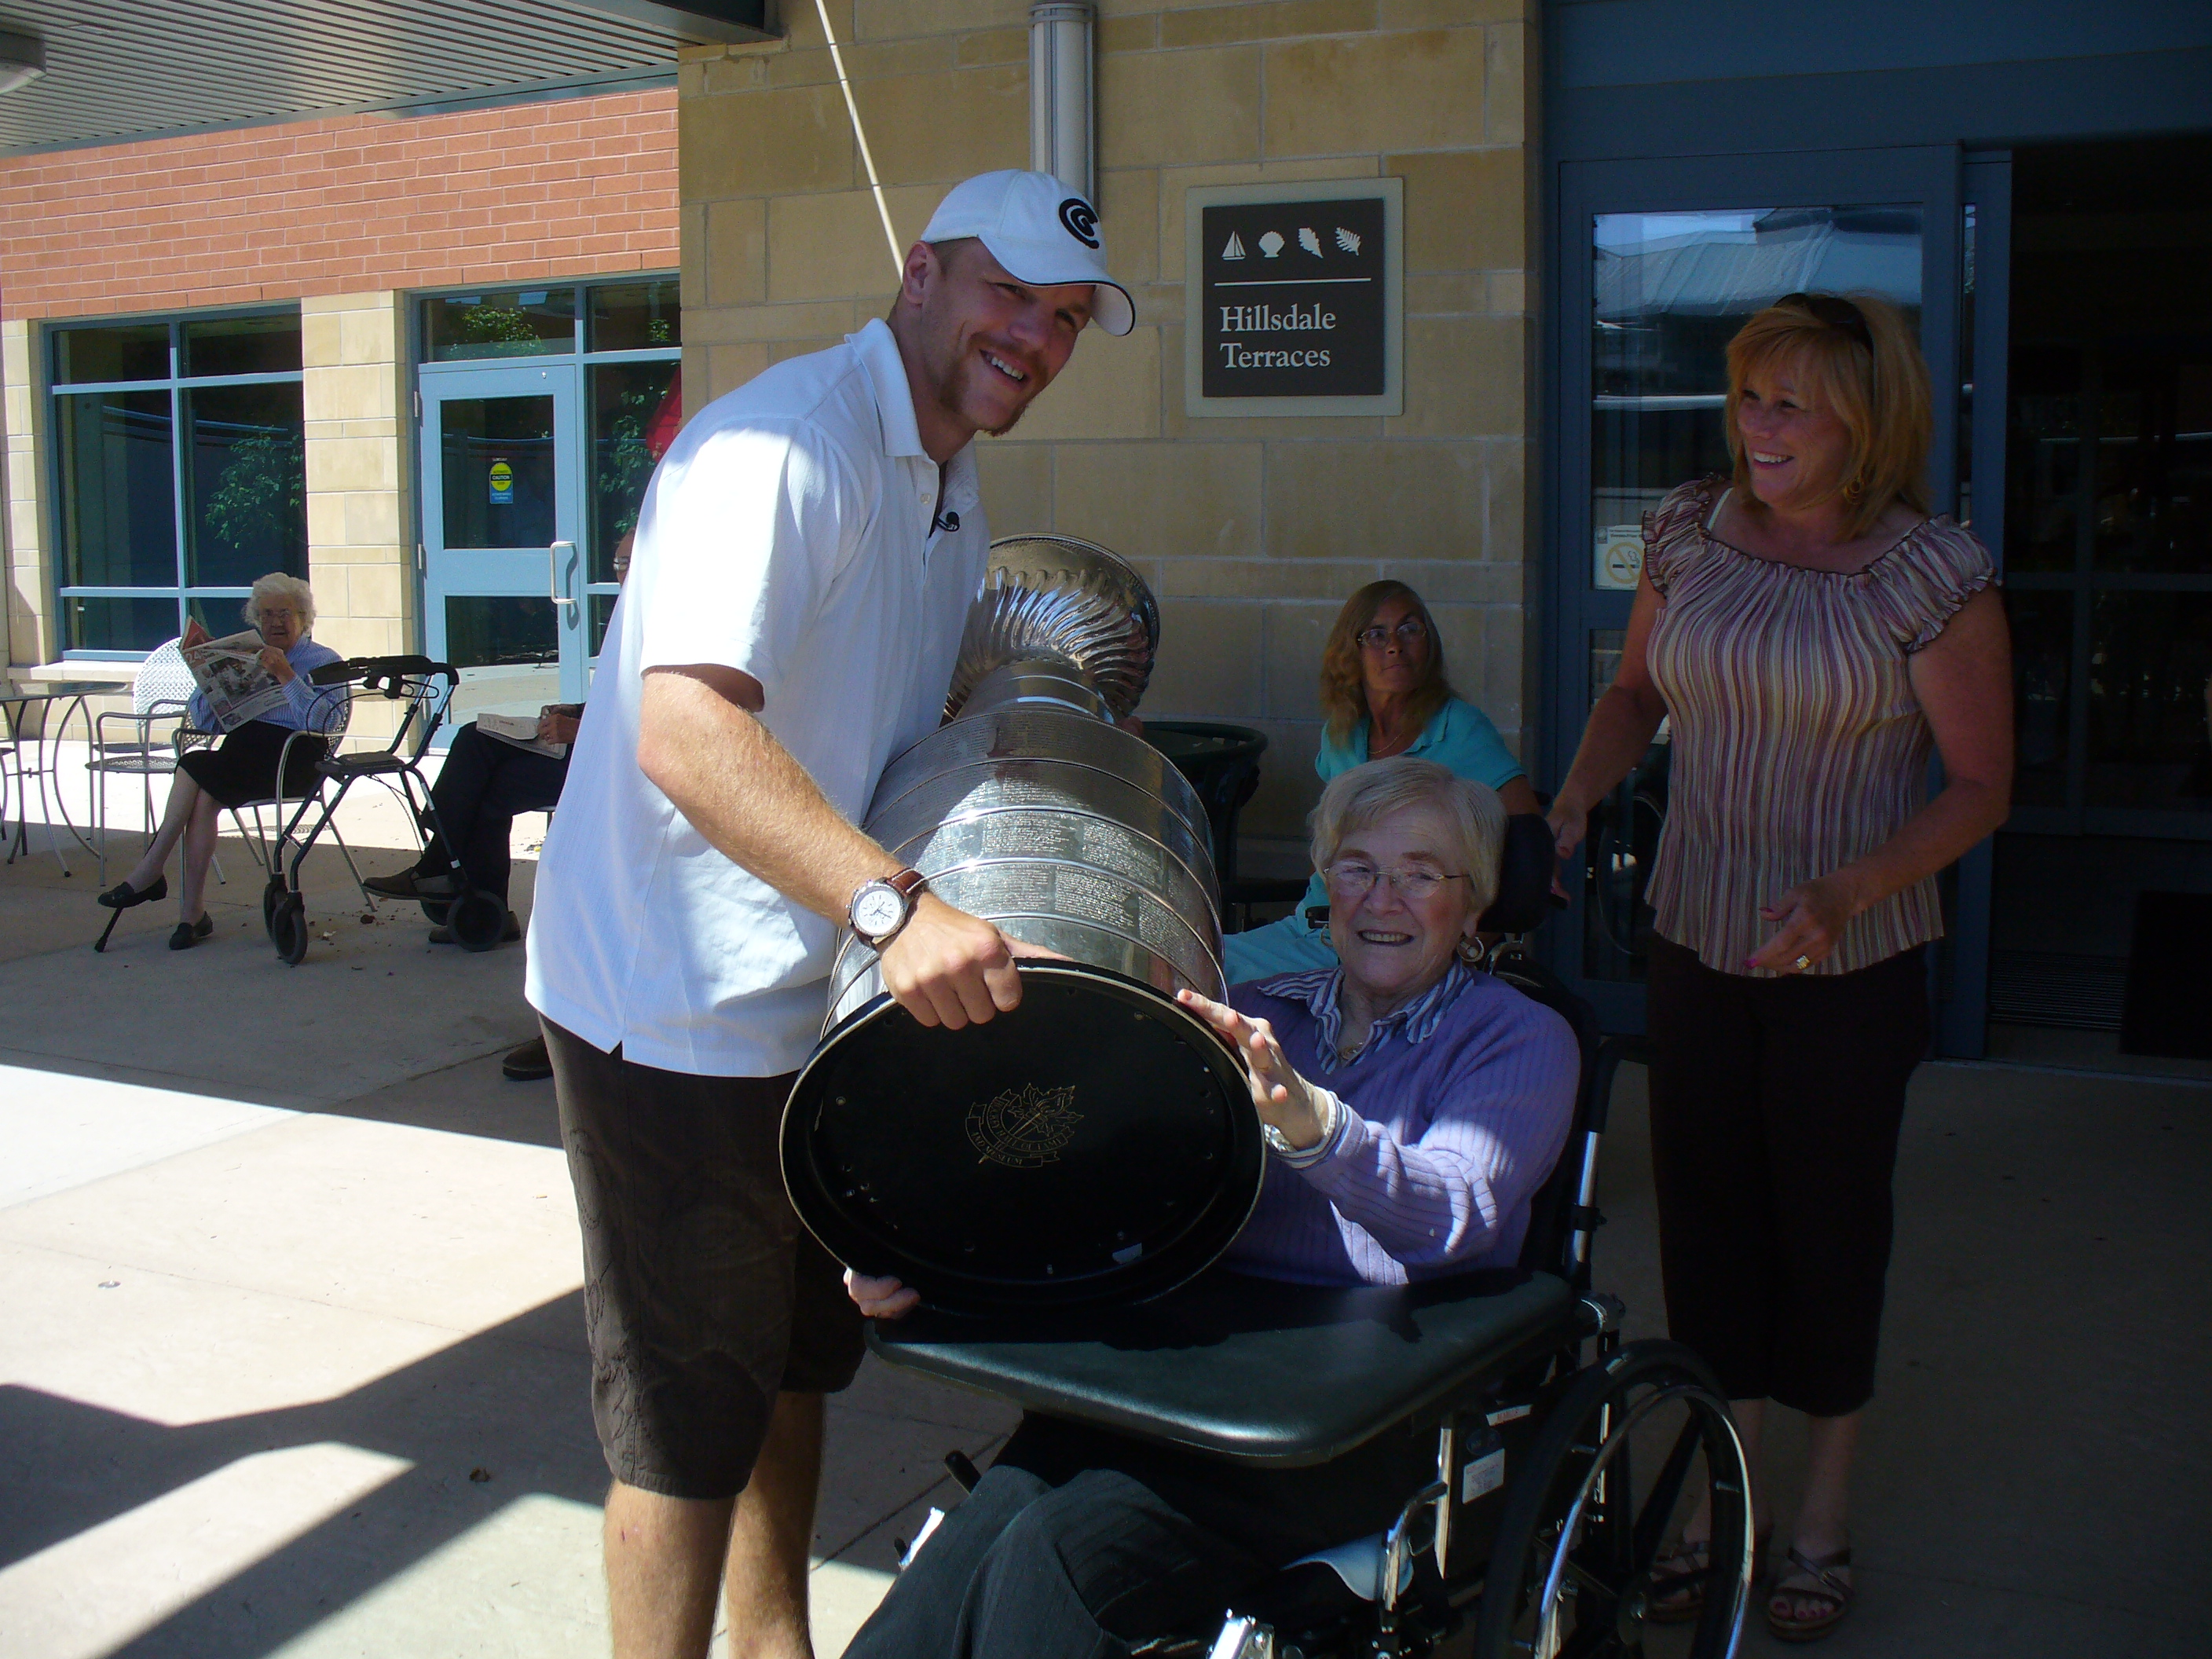 shawn thornton with fans and the stanley cup